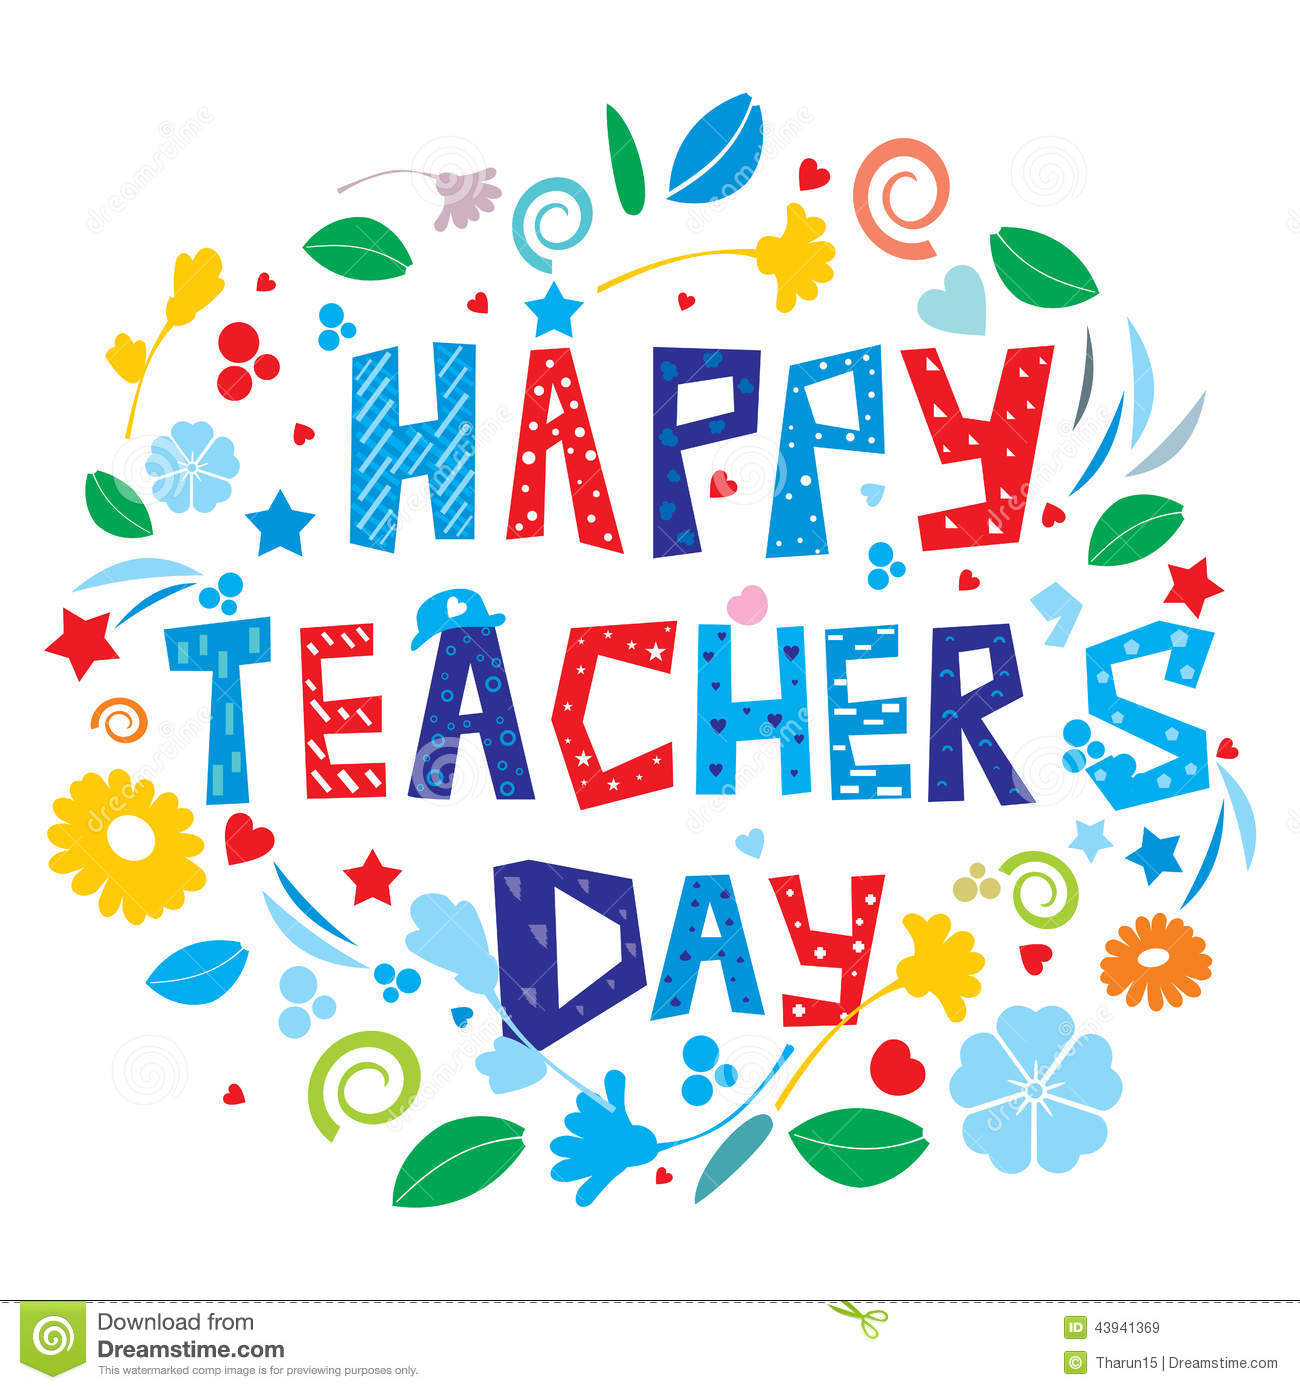 Super Happy Teacher's Day stock image. Image of october - 43941369 #UP73